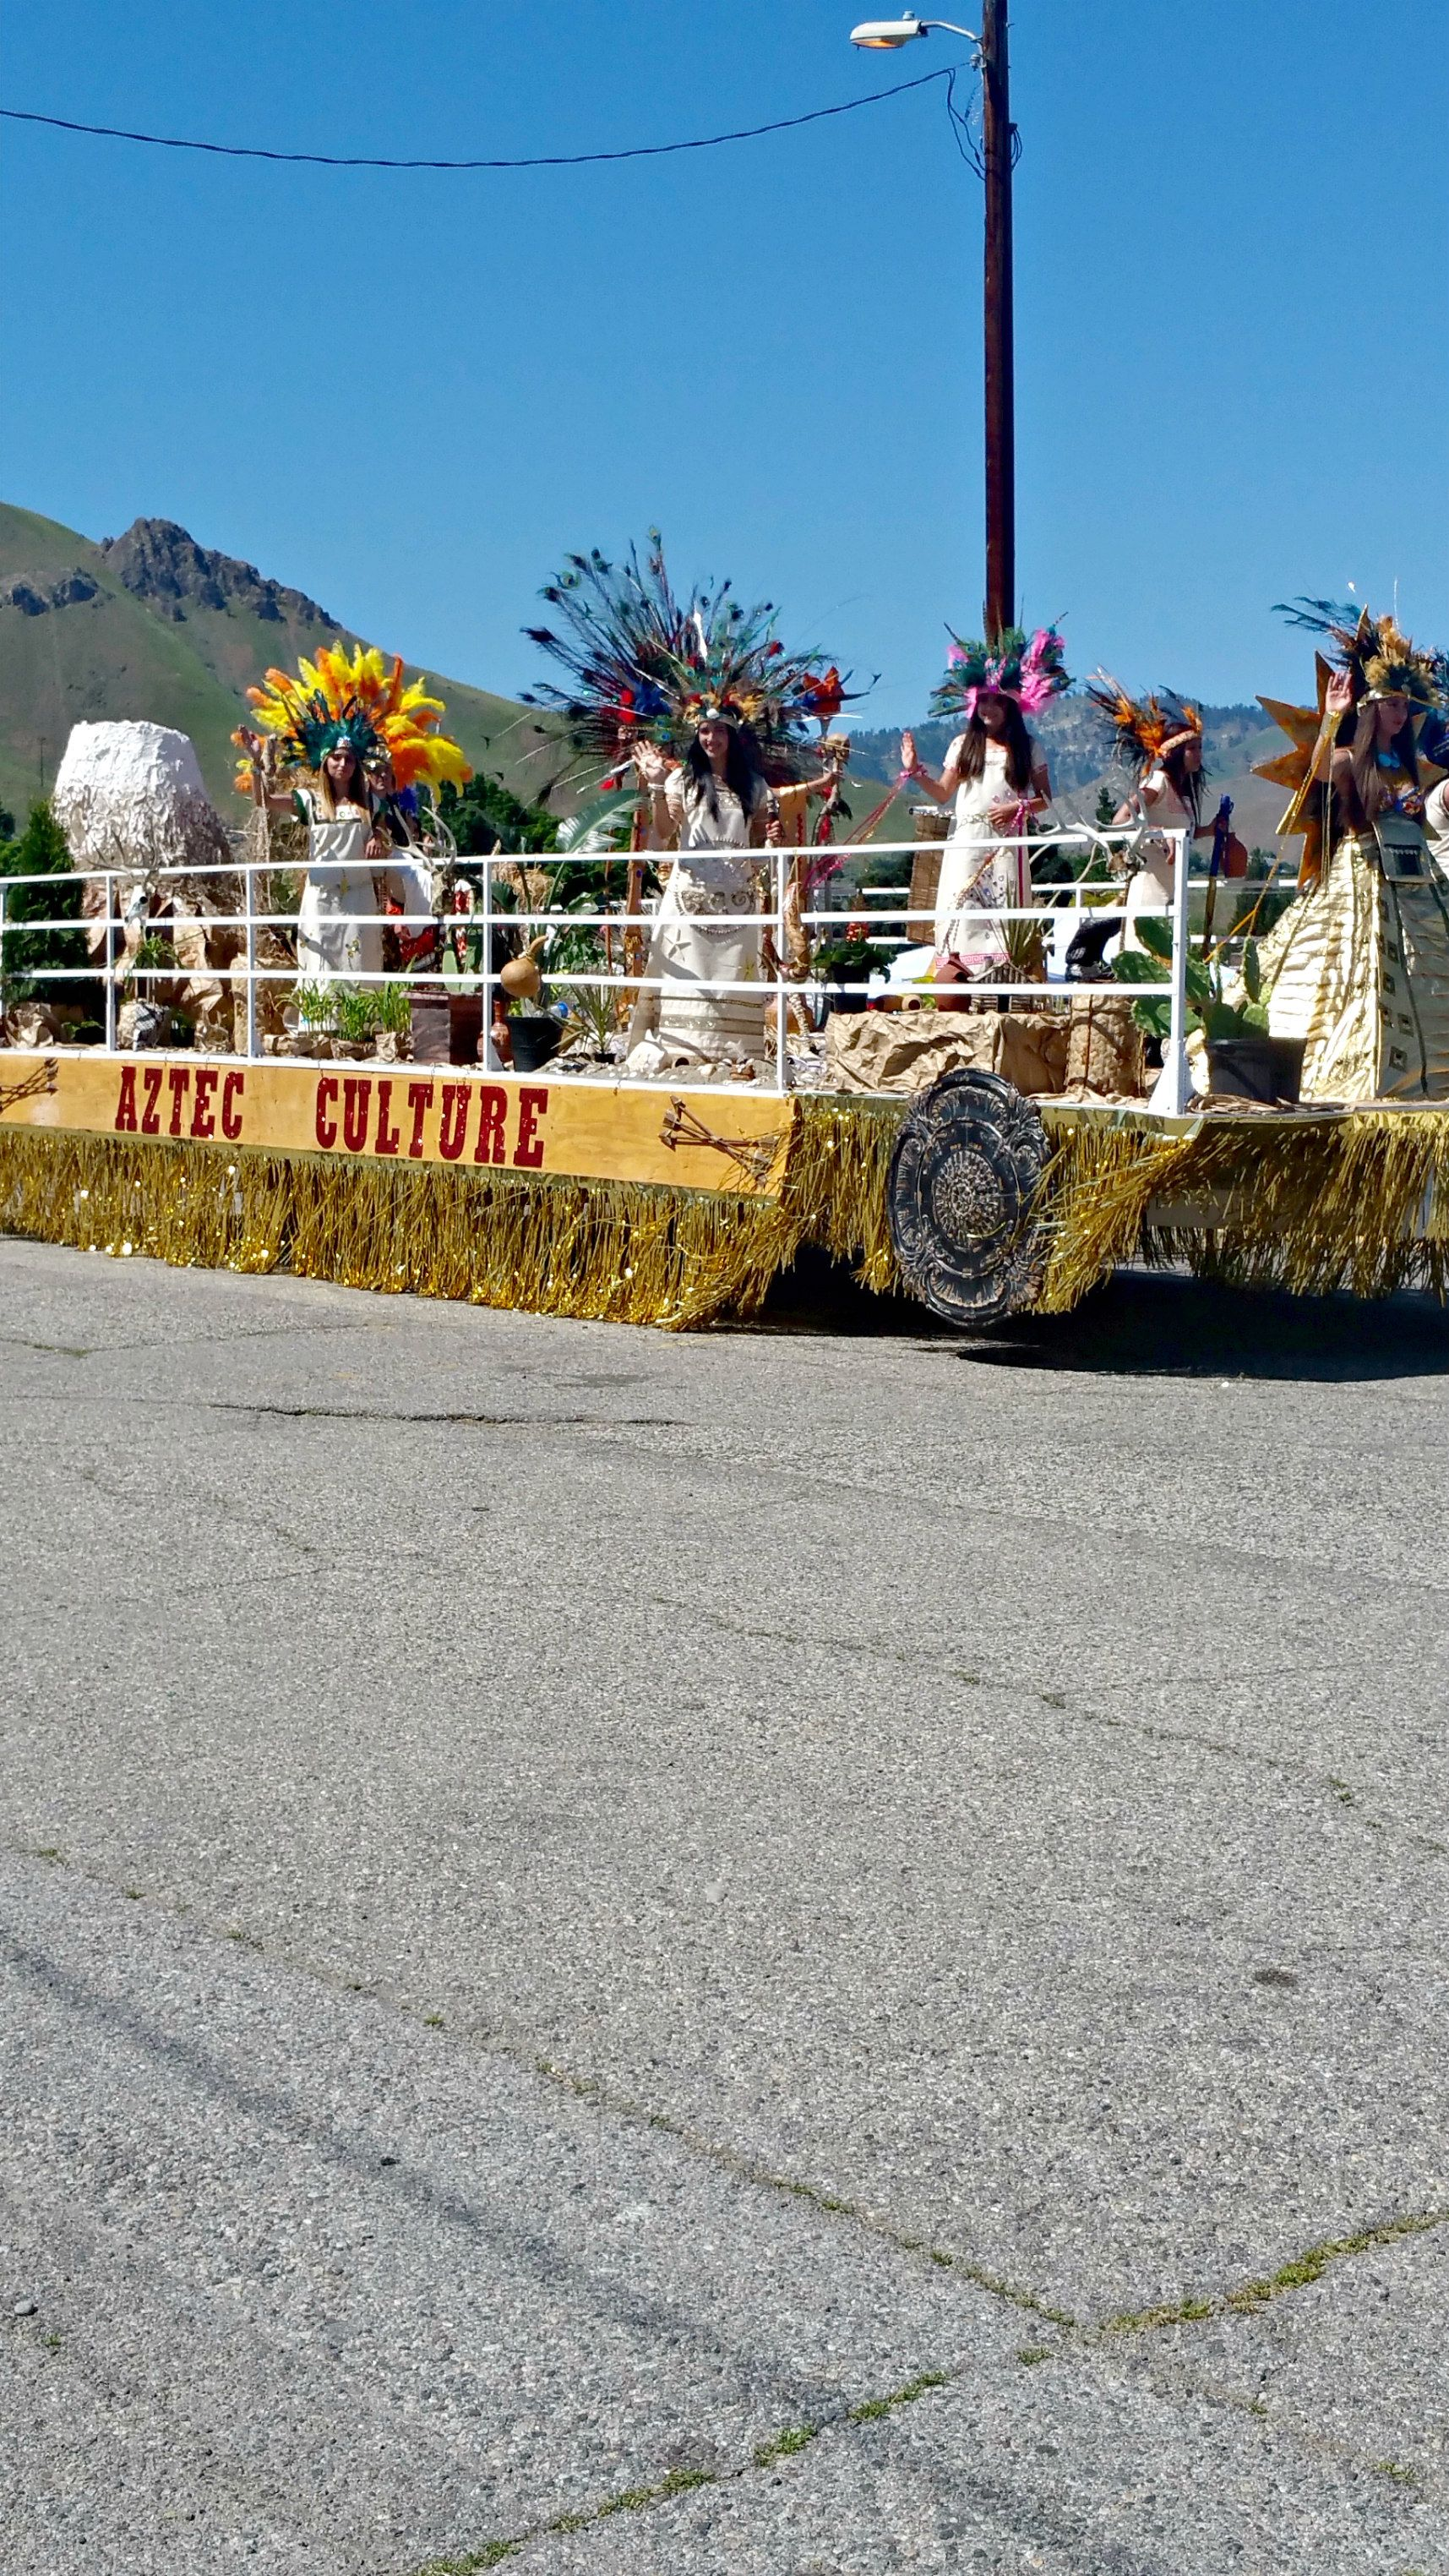 The Aztec float in the Apple Blossom Parade 2016